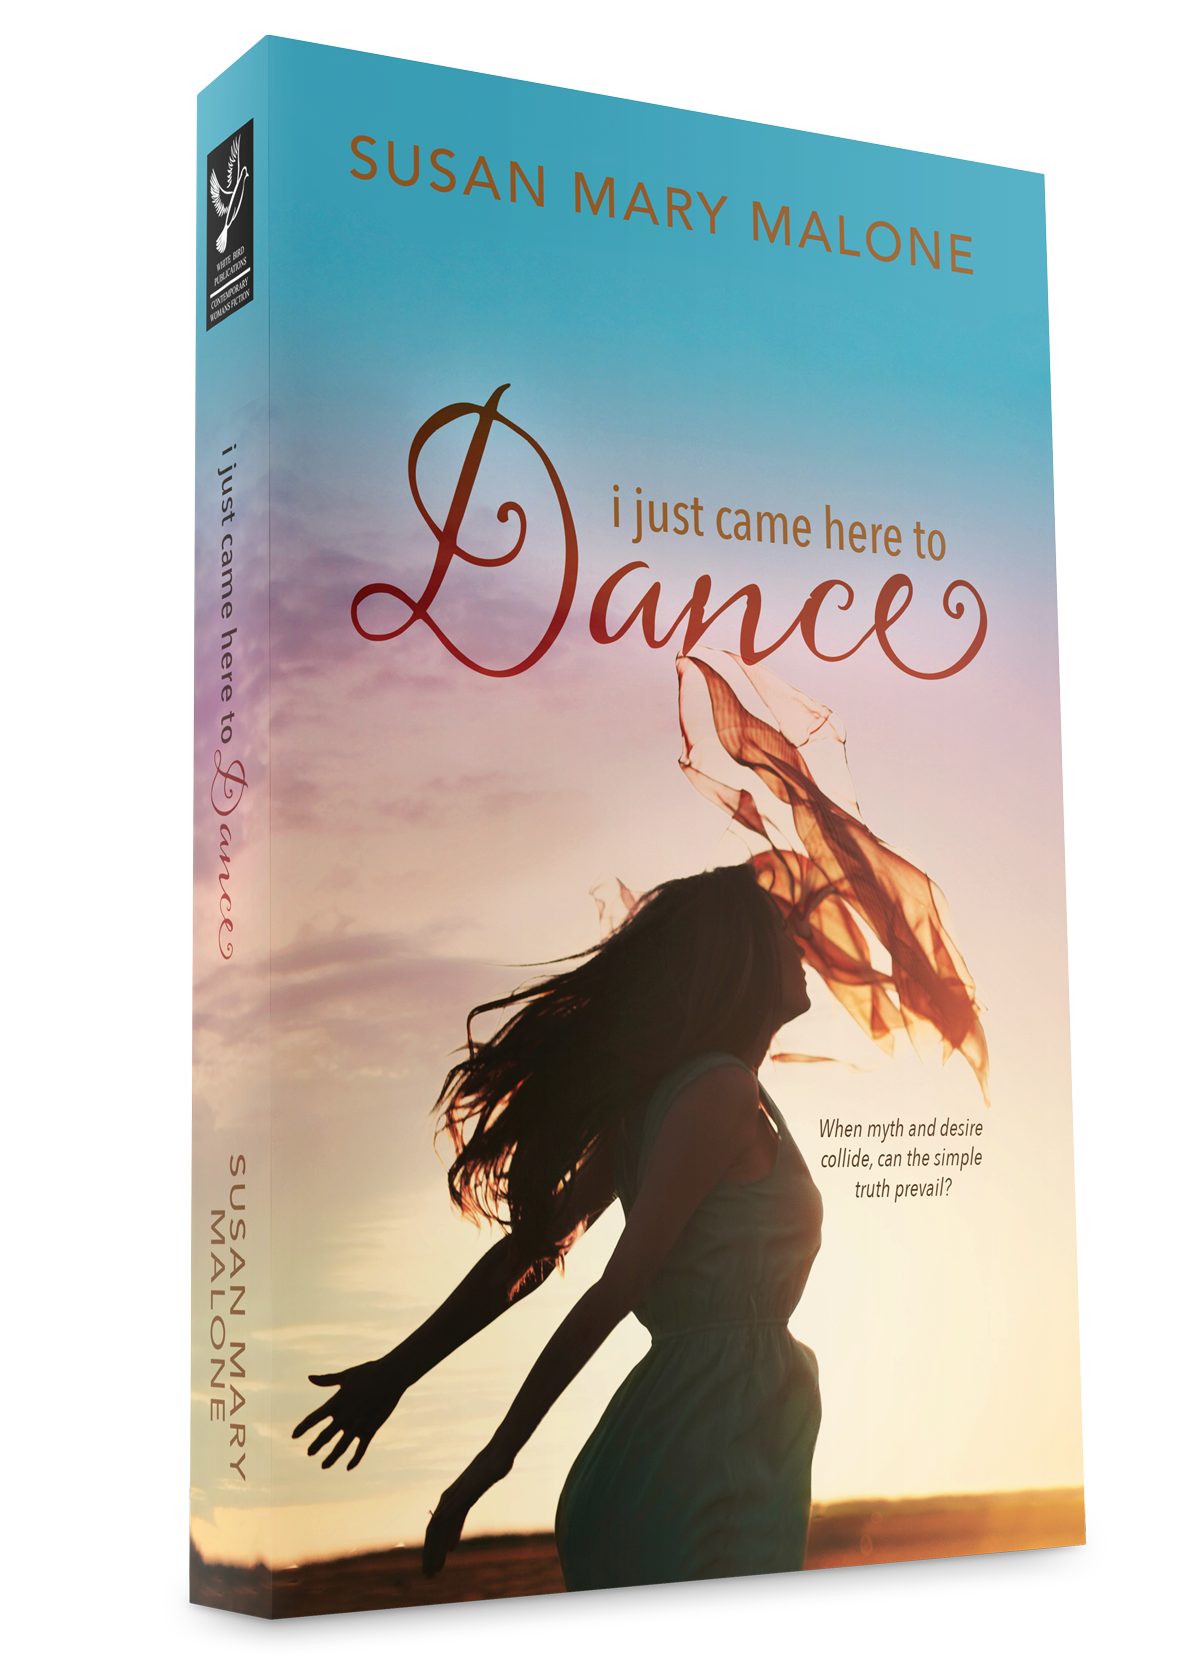 Print cover of I Just Came Here To Dance by Susan Mary Malone